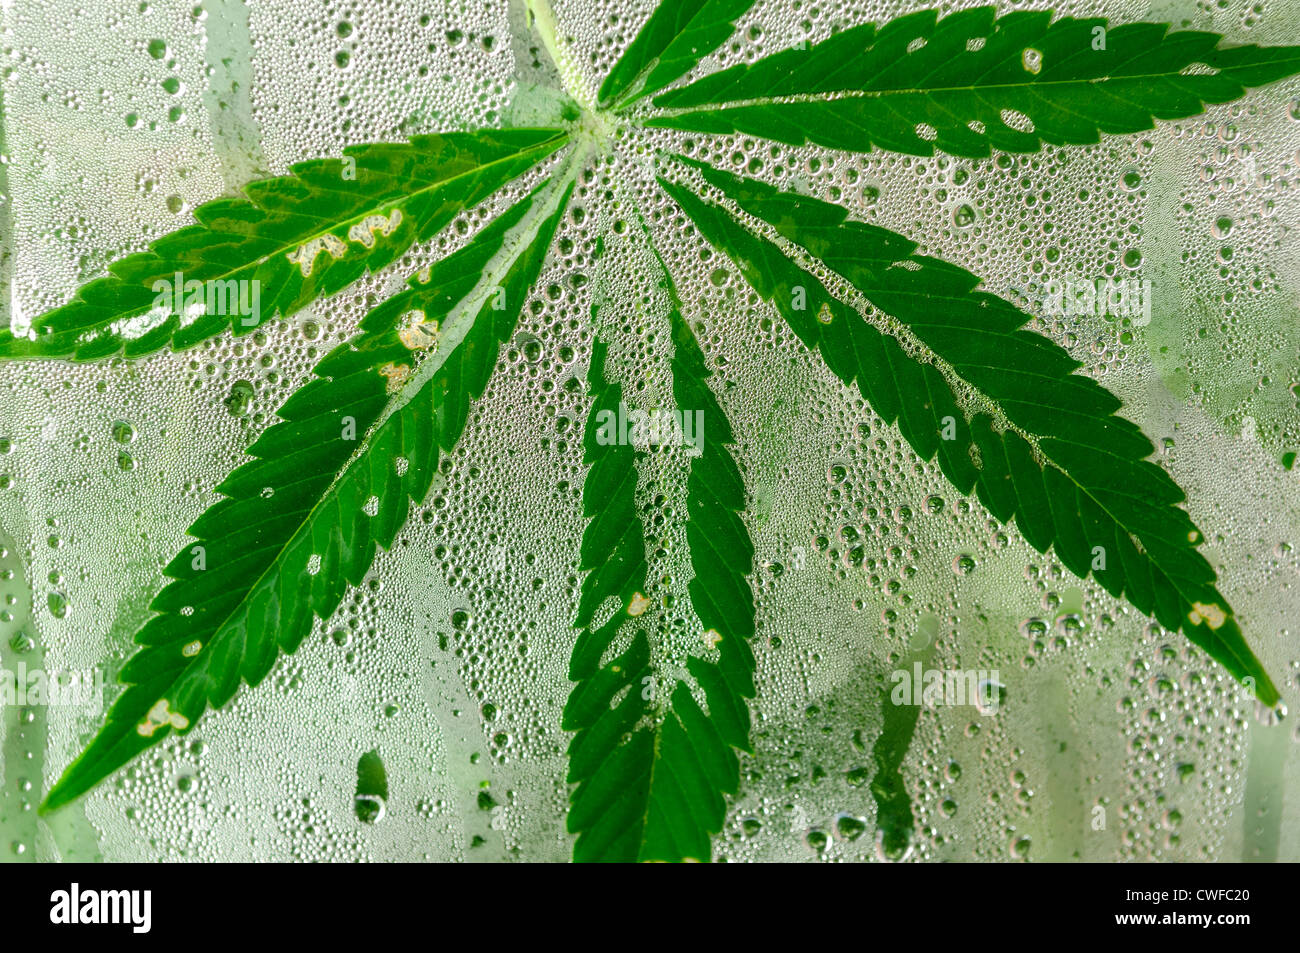 Cannabis,Marijuana Plant(hemp) Growing in an polythene green house. - Stock Image